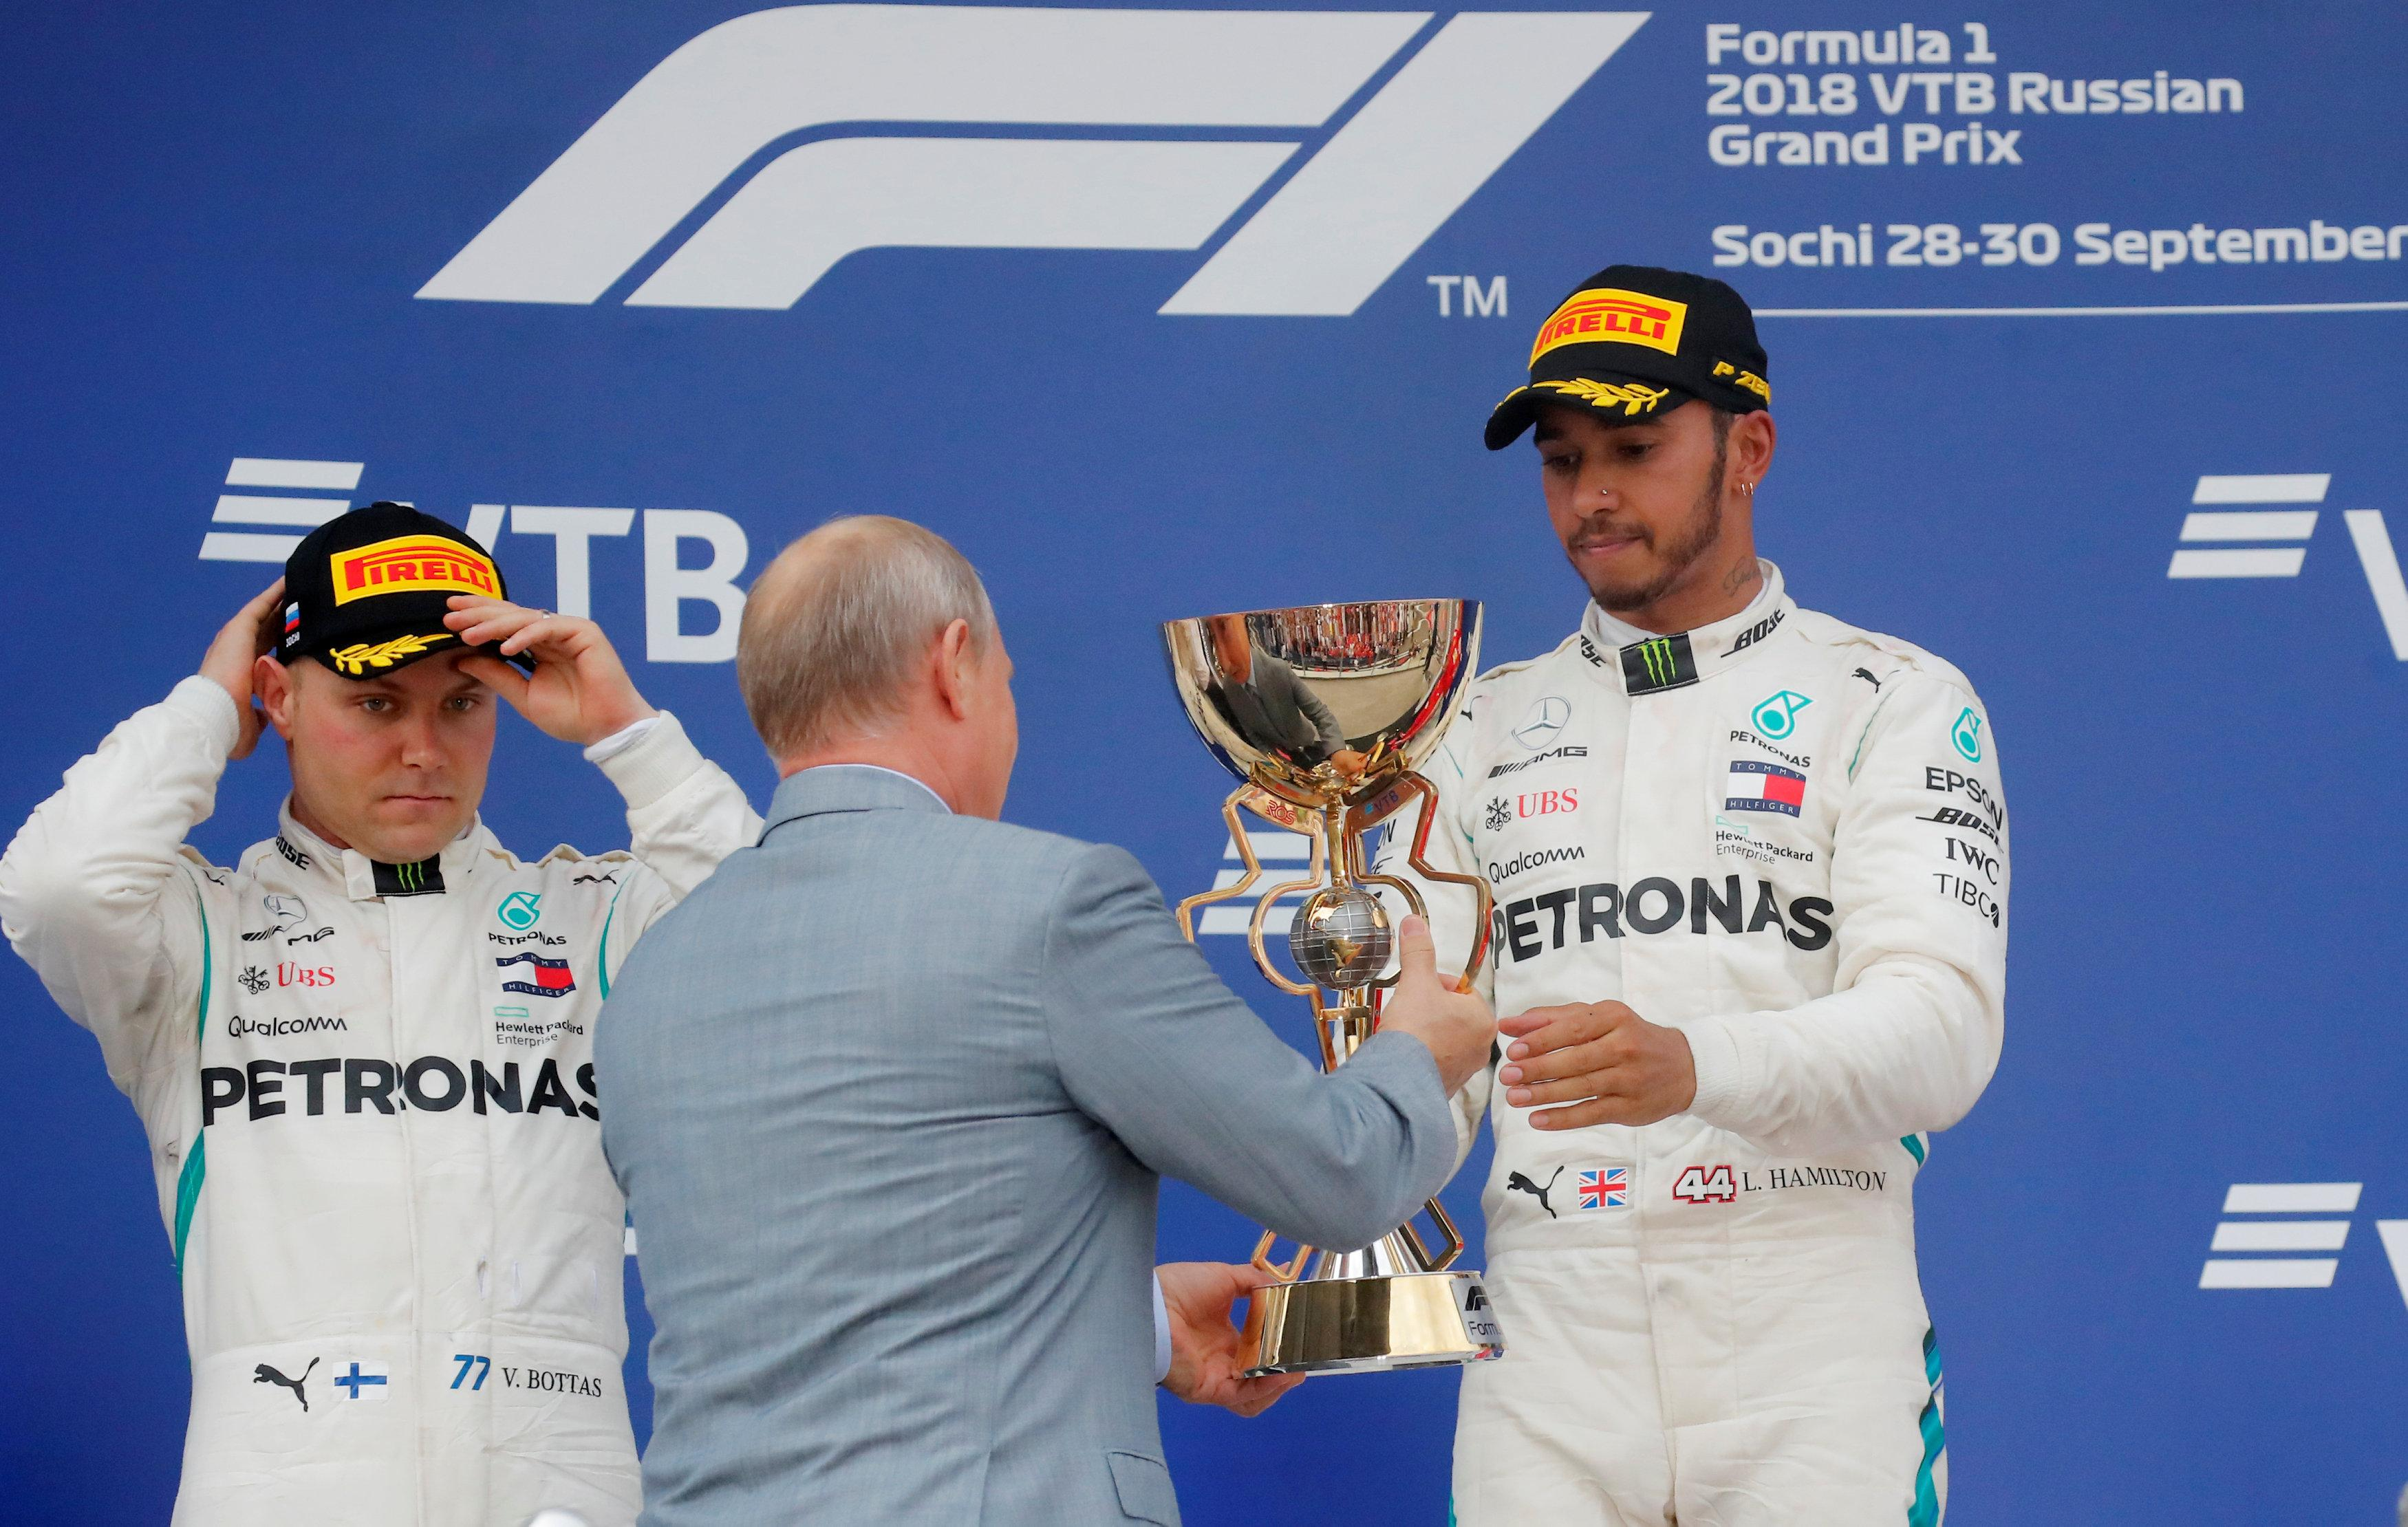 Lewis Hamilton receives his trophy from Russian president Vladimir Putin